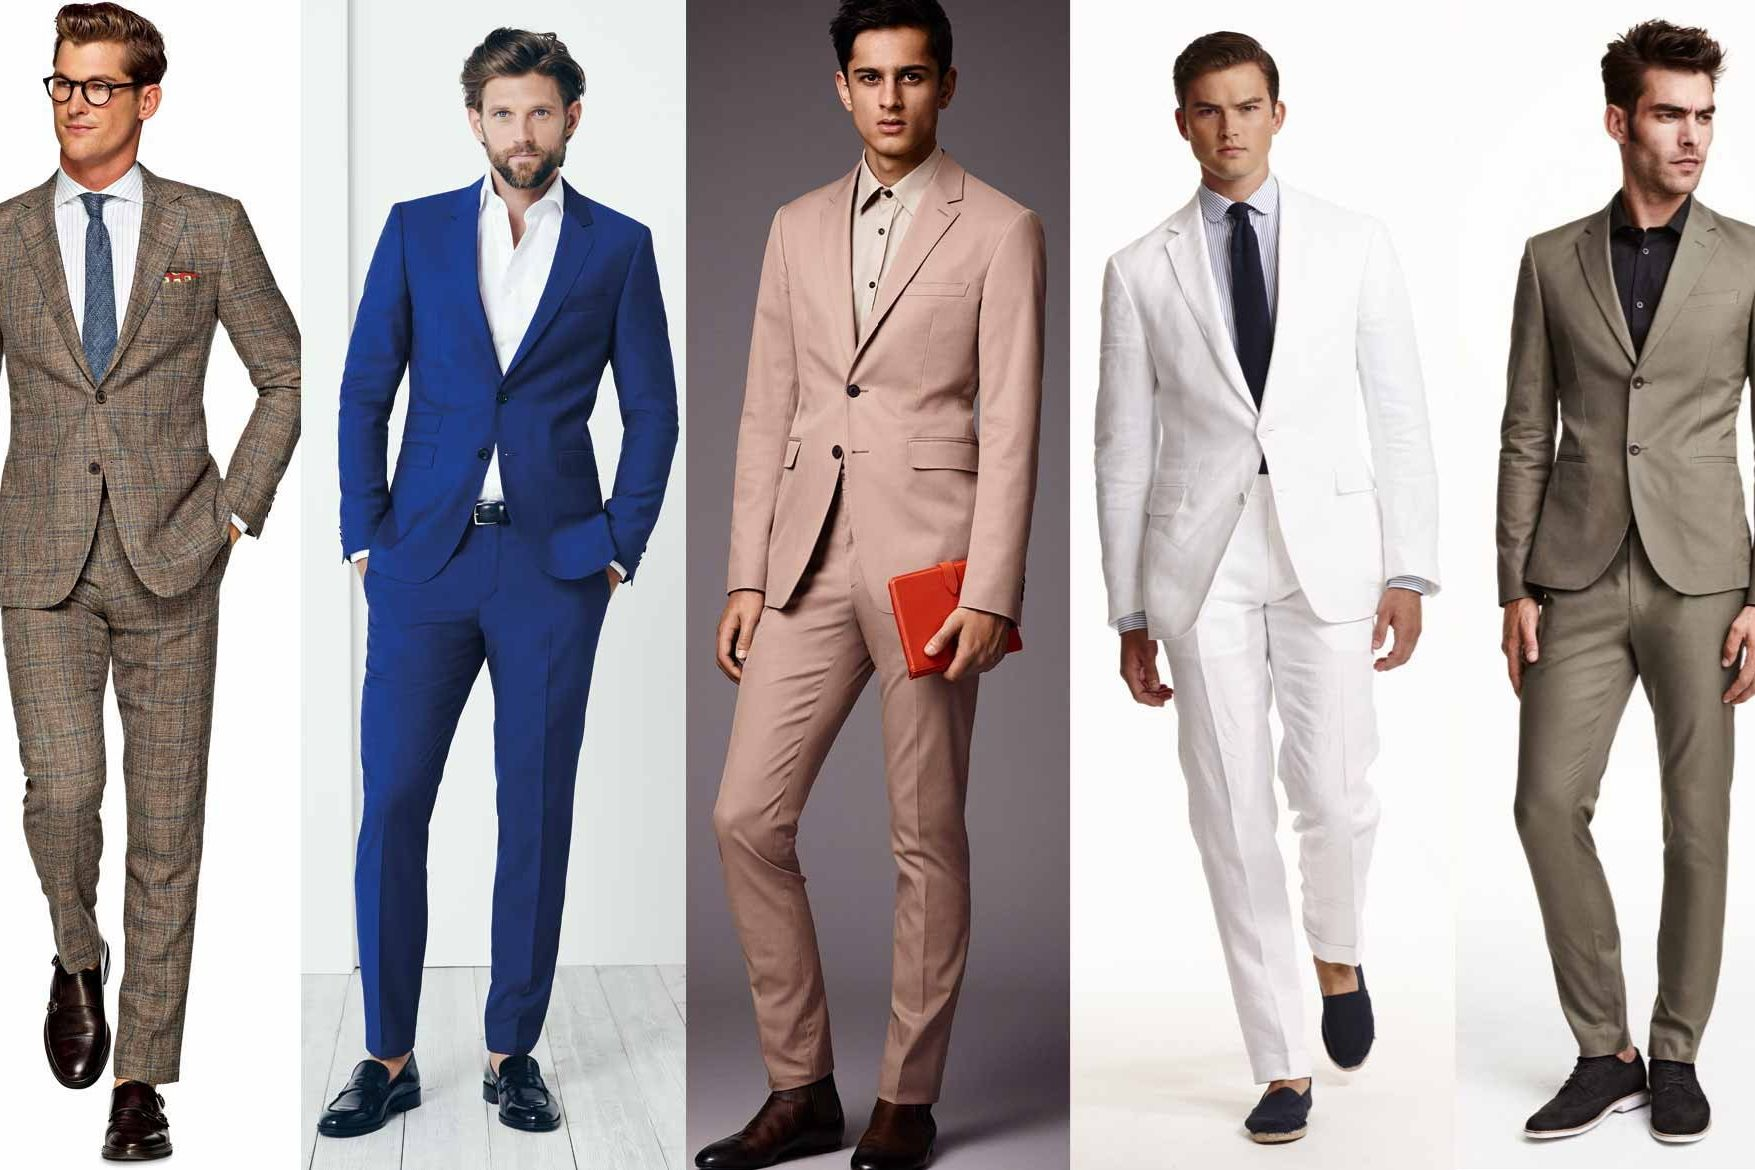 We chatted with a suit expert on what men need to look for when purchasing a summer suit—including the construction, fabric, and colors. See the top tips, plus shop our favorites.